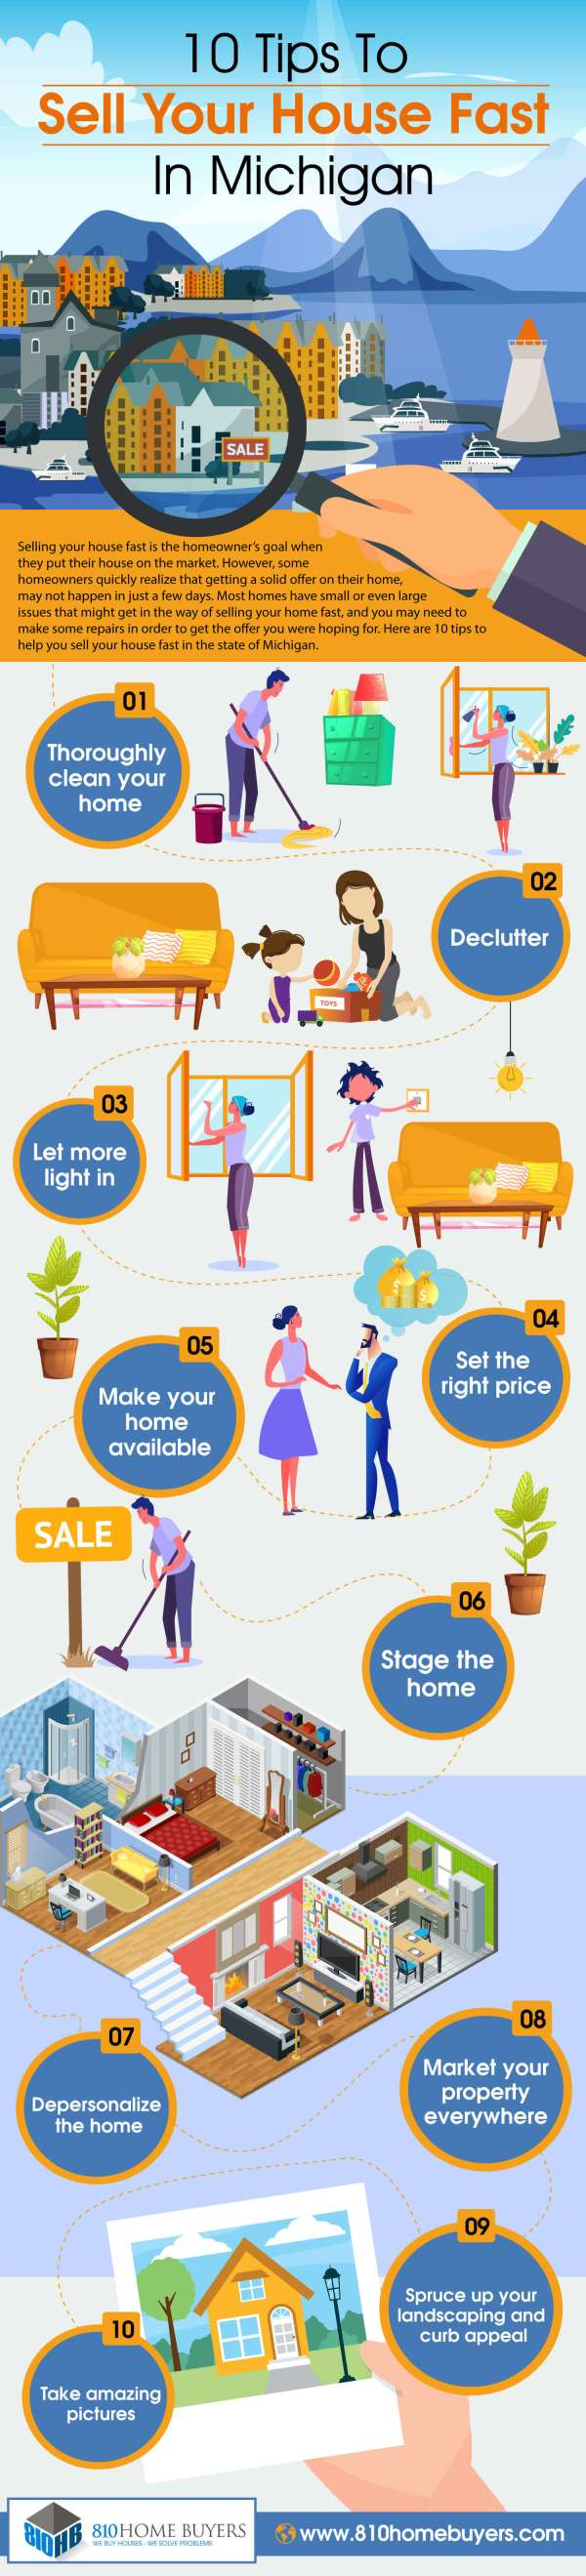 10-Tips-To-Sell-Your-House-Fast-In-Michigan